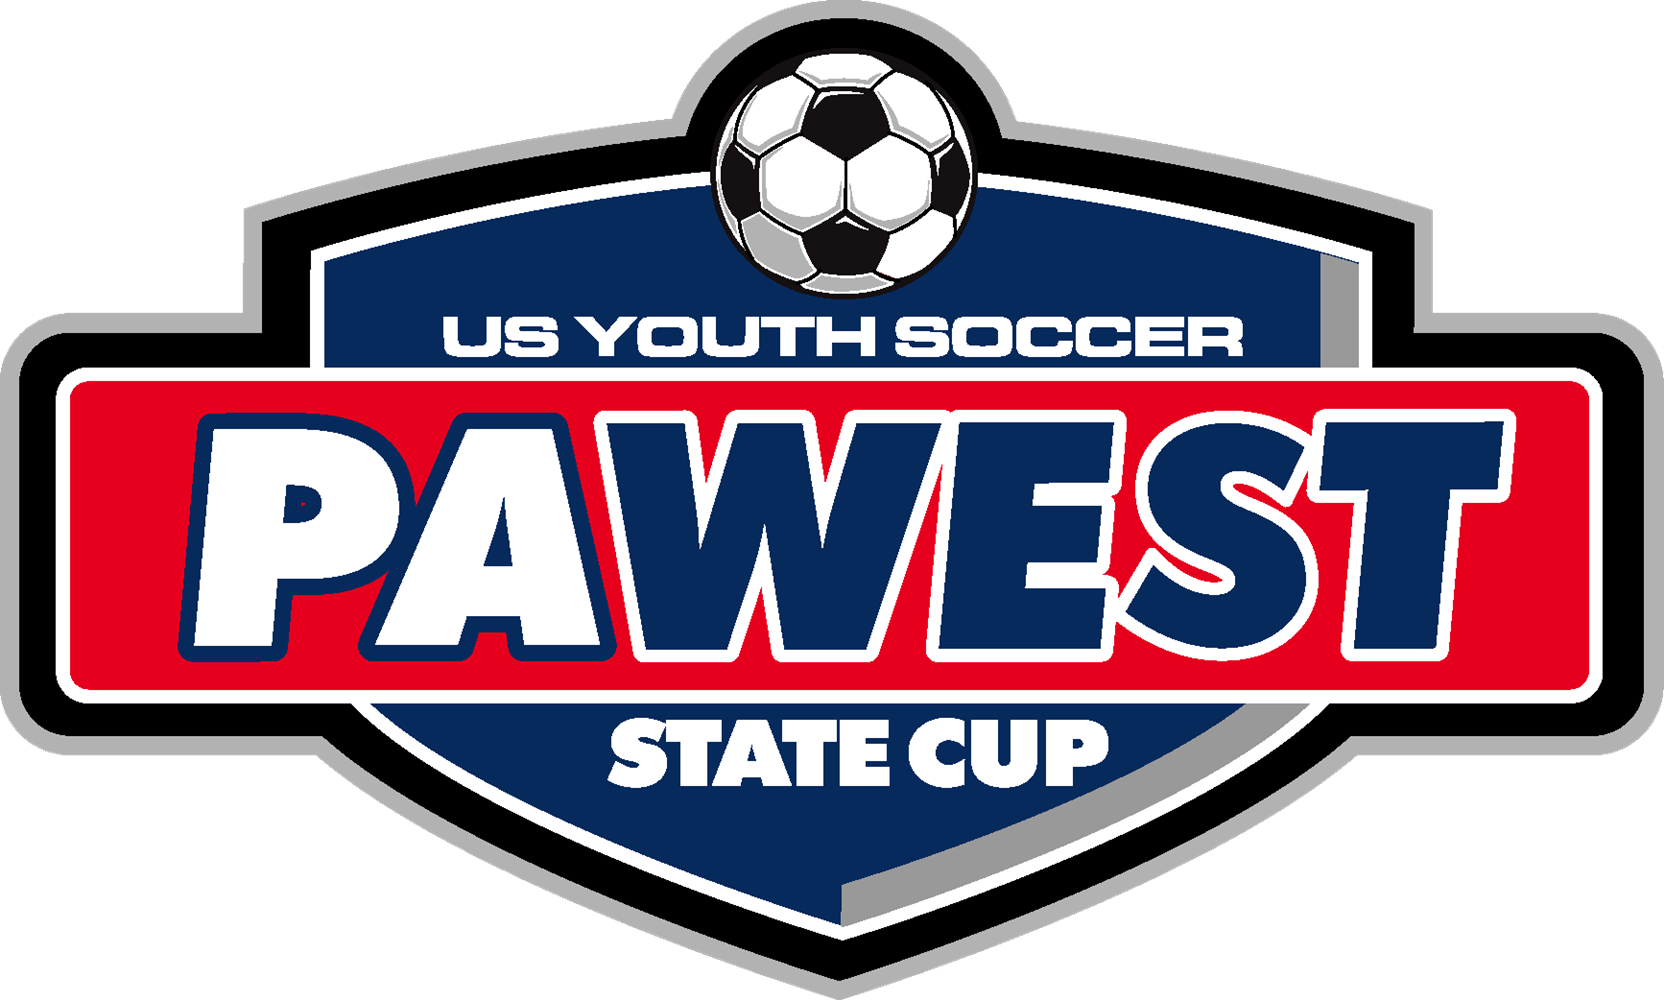 pa_west_state_cup_(no_year)